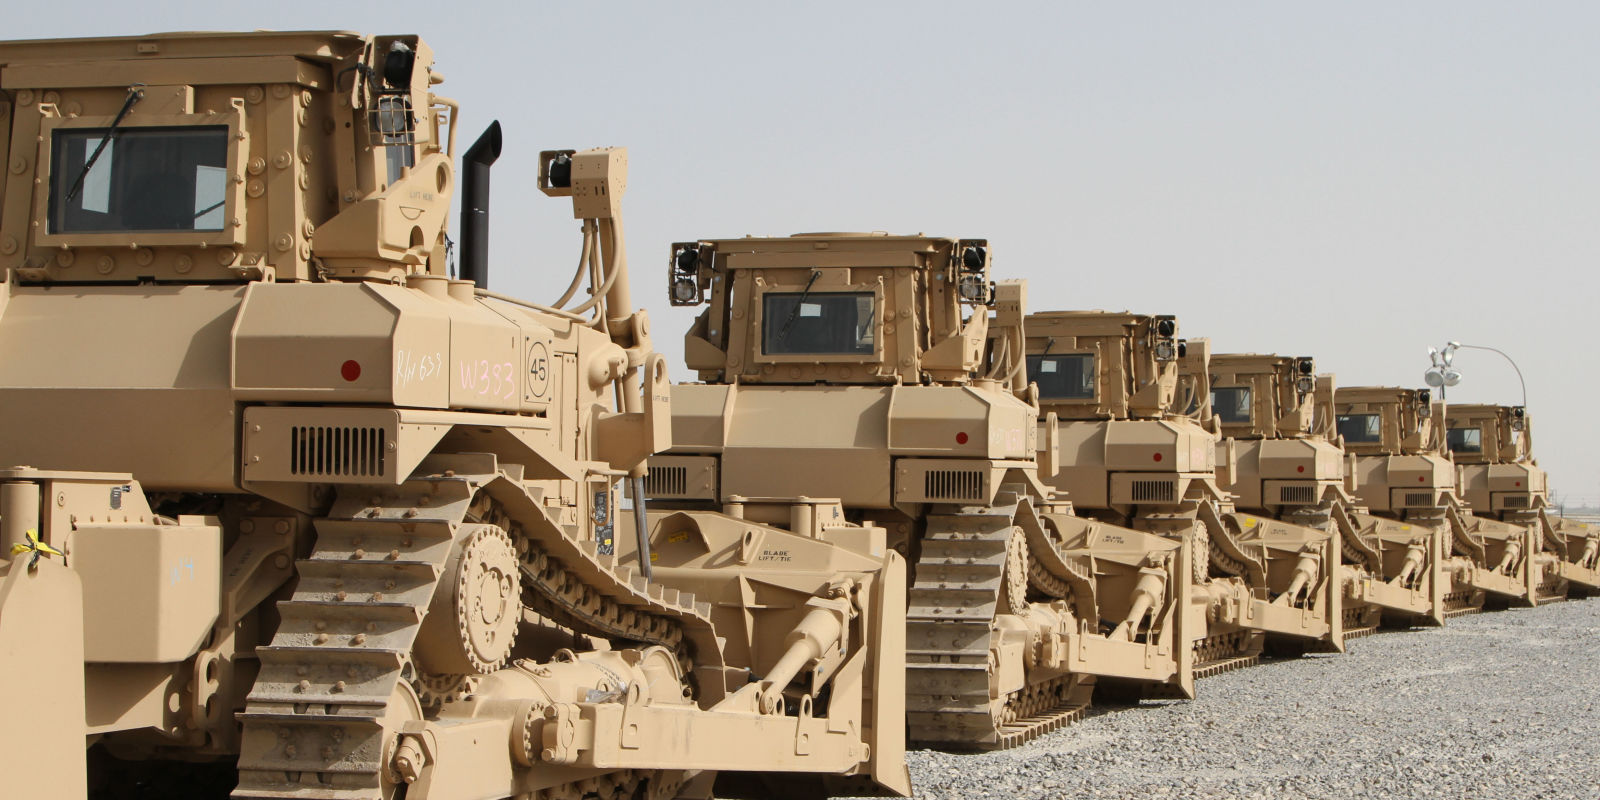 Caterpillar Bulldozers Are Leading The Fight Against The